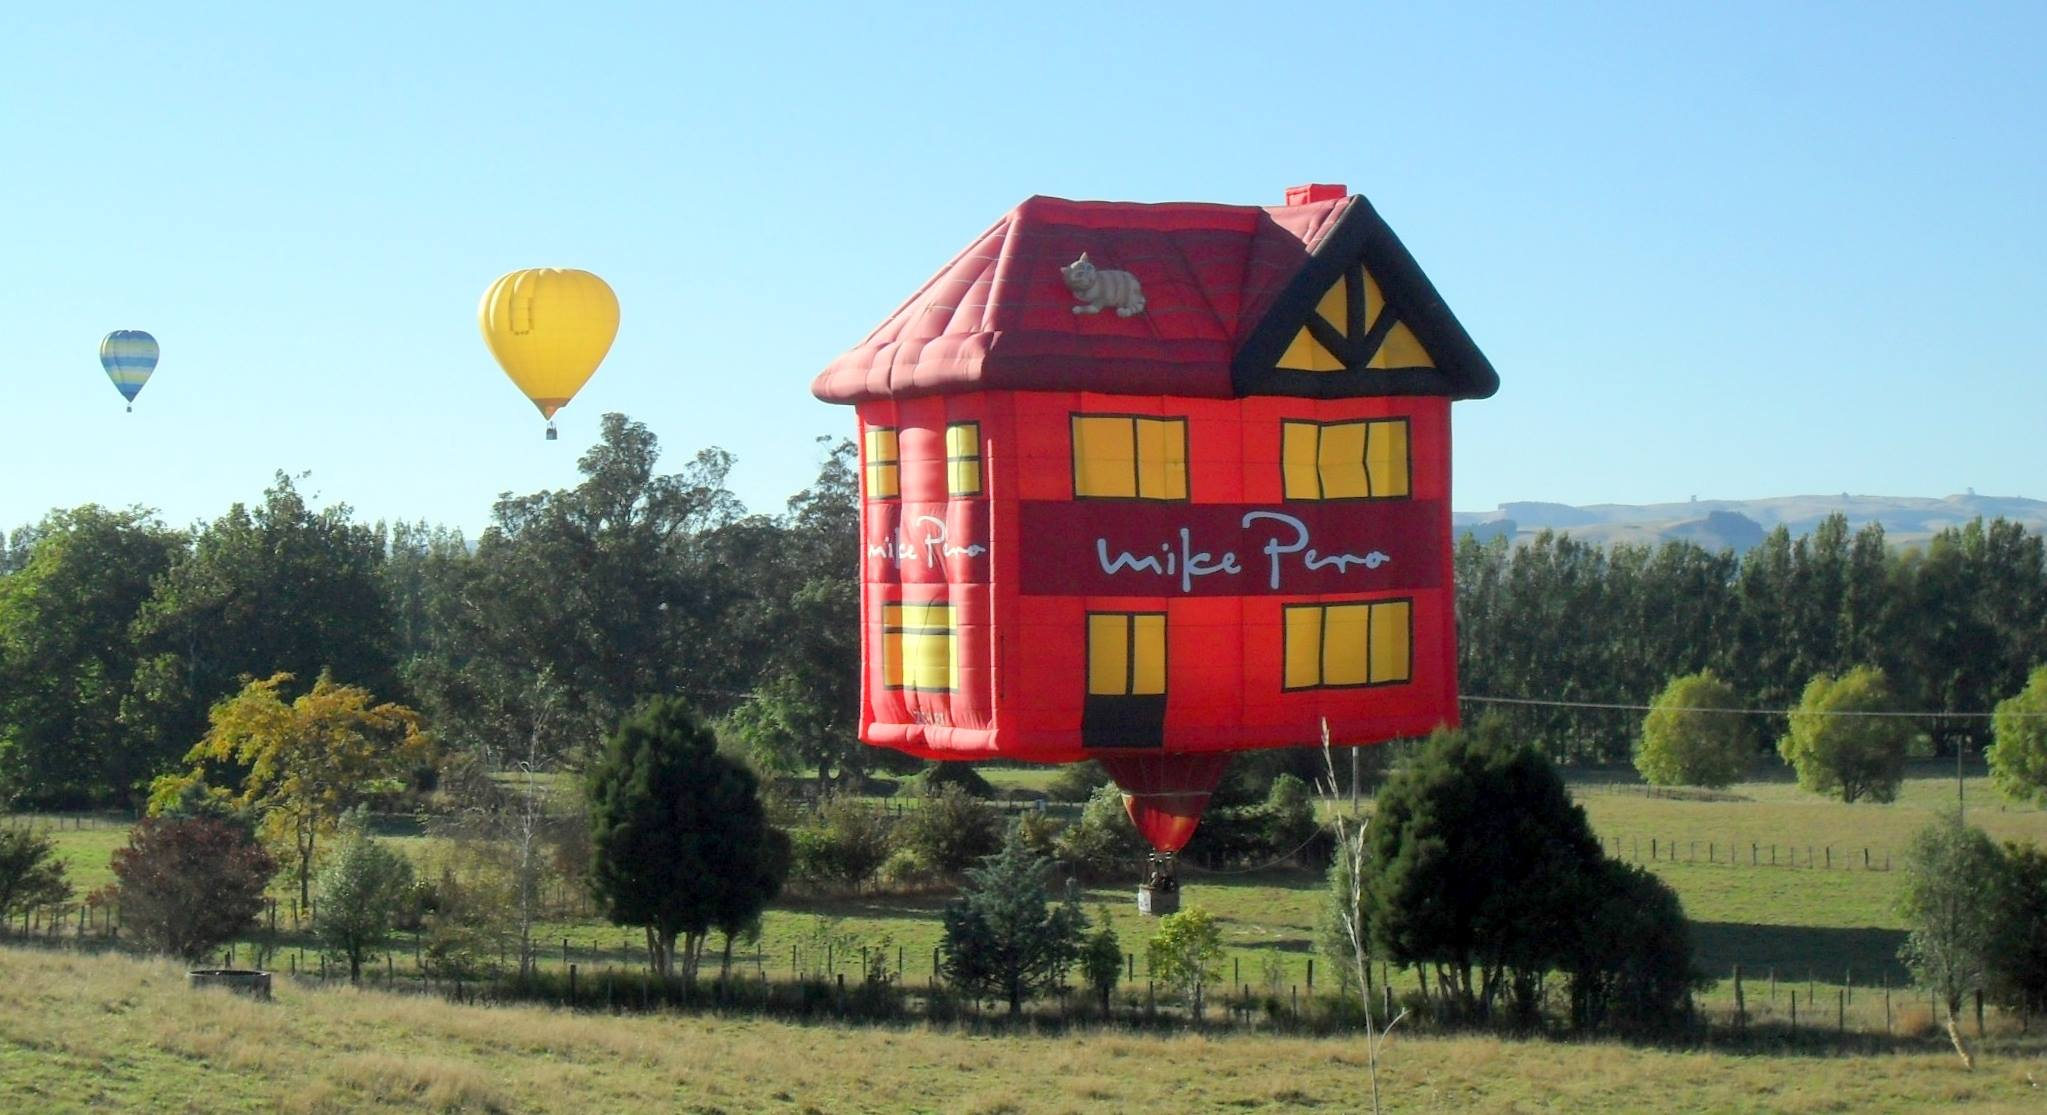 Mike Pero House (ZK-LBT)    McKee, Daryl   A flying house balloon owned by Mike Pero Real Estate will be an unmissable sight with its bright red walls and pointed 'roof' with a cat napping on top.  NOT for Sale ...  Wairarapa Balloon Festival  is delighted to welcome a flying house as our second special shape to this year's 20th Celebrations ... Thank you Mike Pero